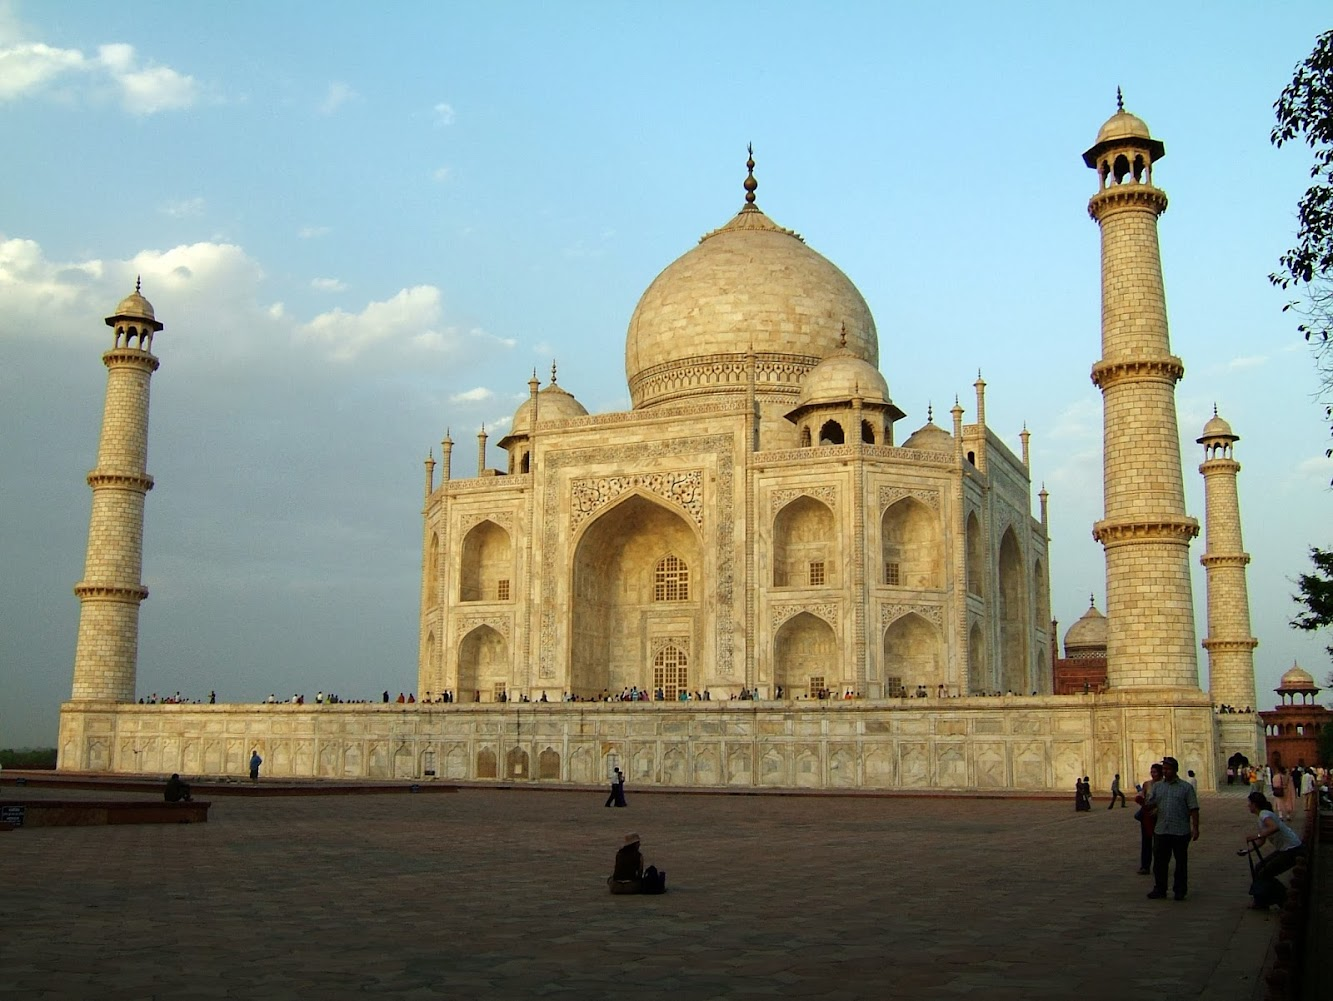 More Stuff: India sharpens focus on preservation of famed Taj Mahal